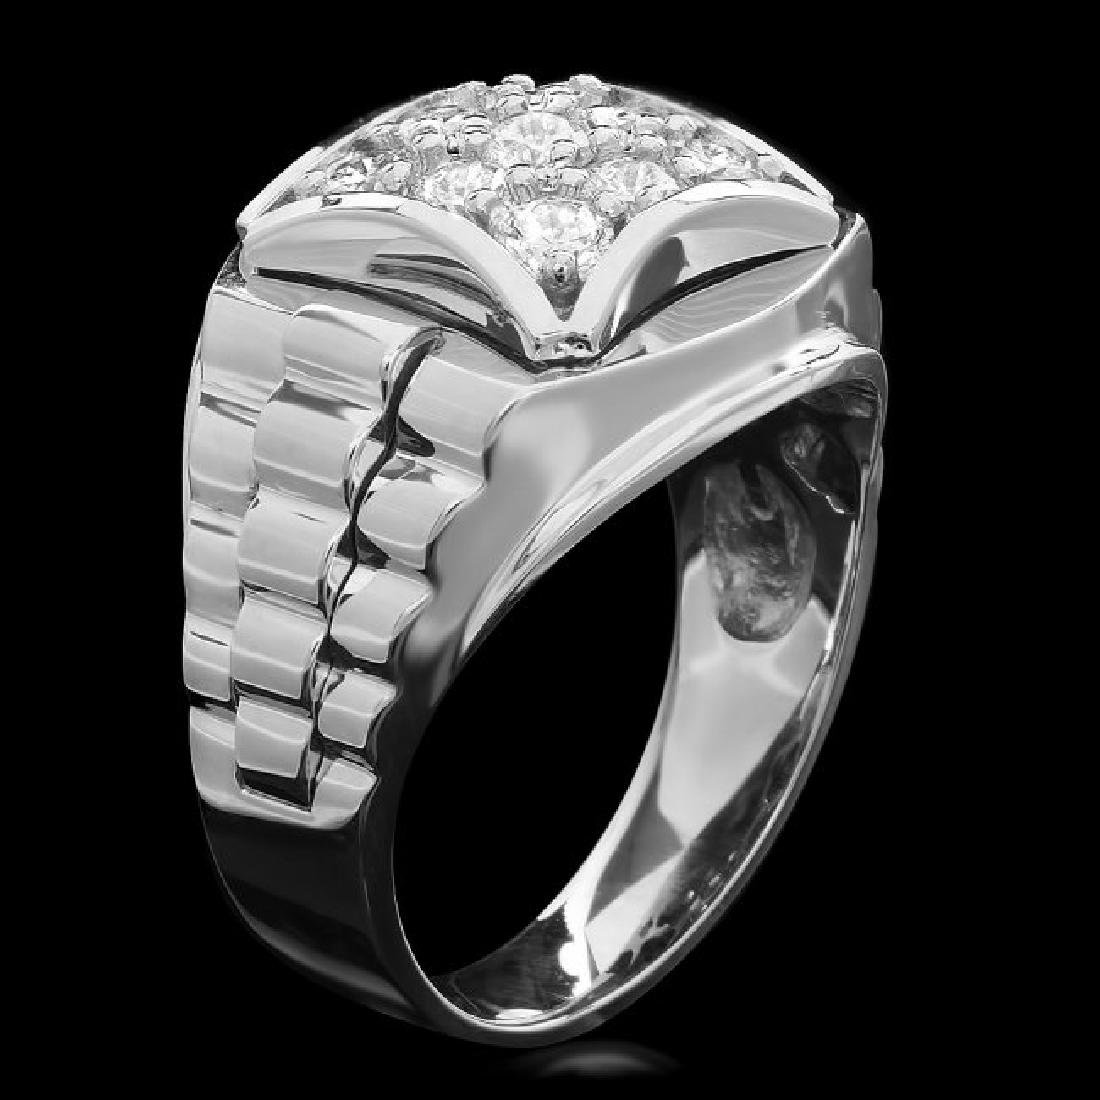 14k White Gold 1.15ct Diamond Mens Ring - 2